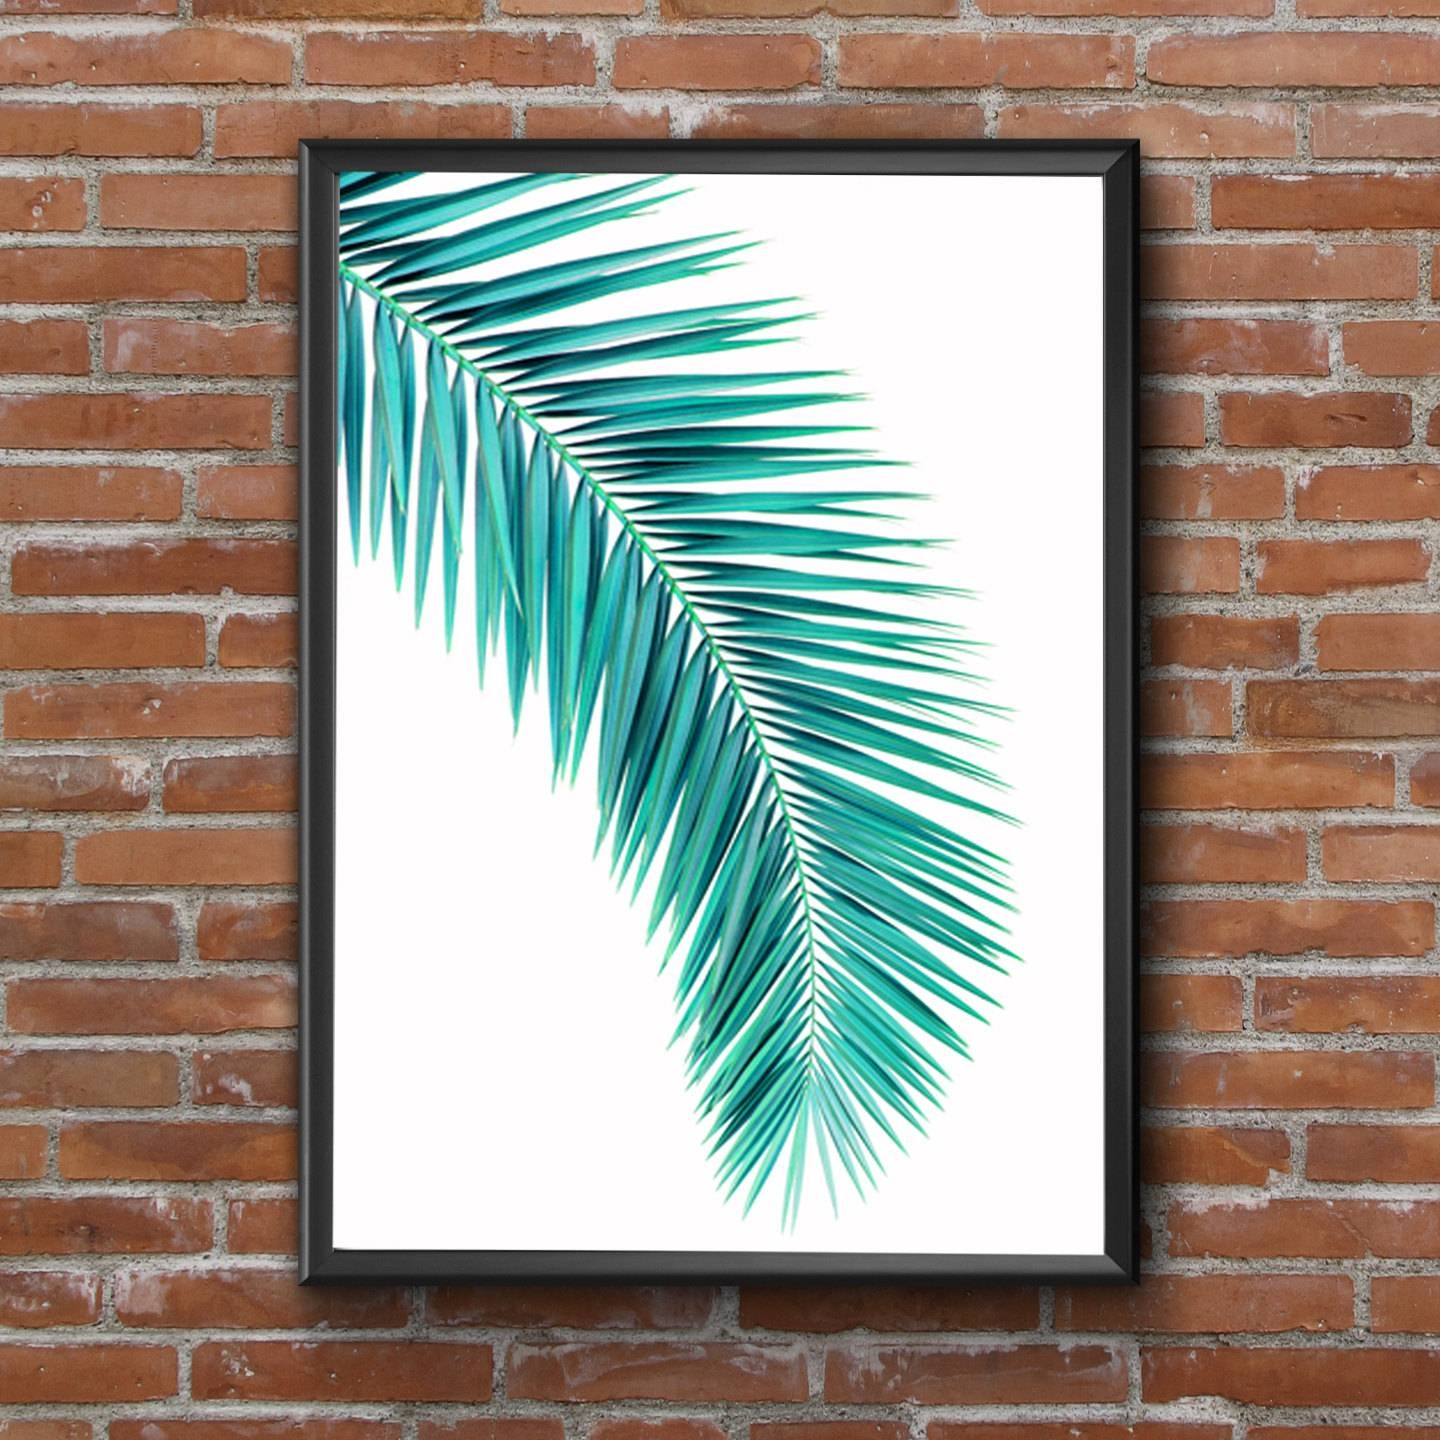 Image Gallery Of Palm Leaf Wall Art View 16 Of 20 Photos